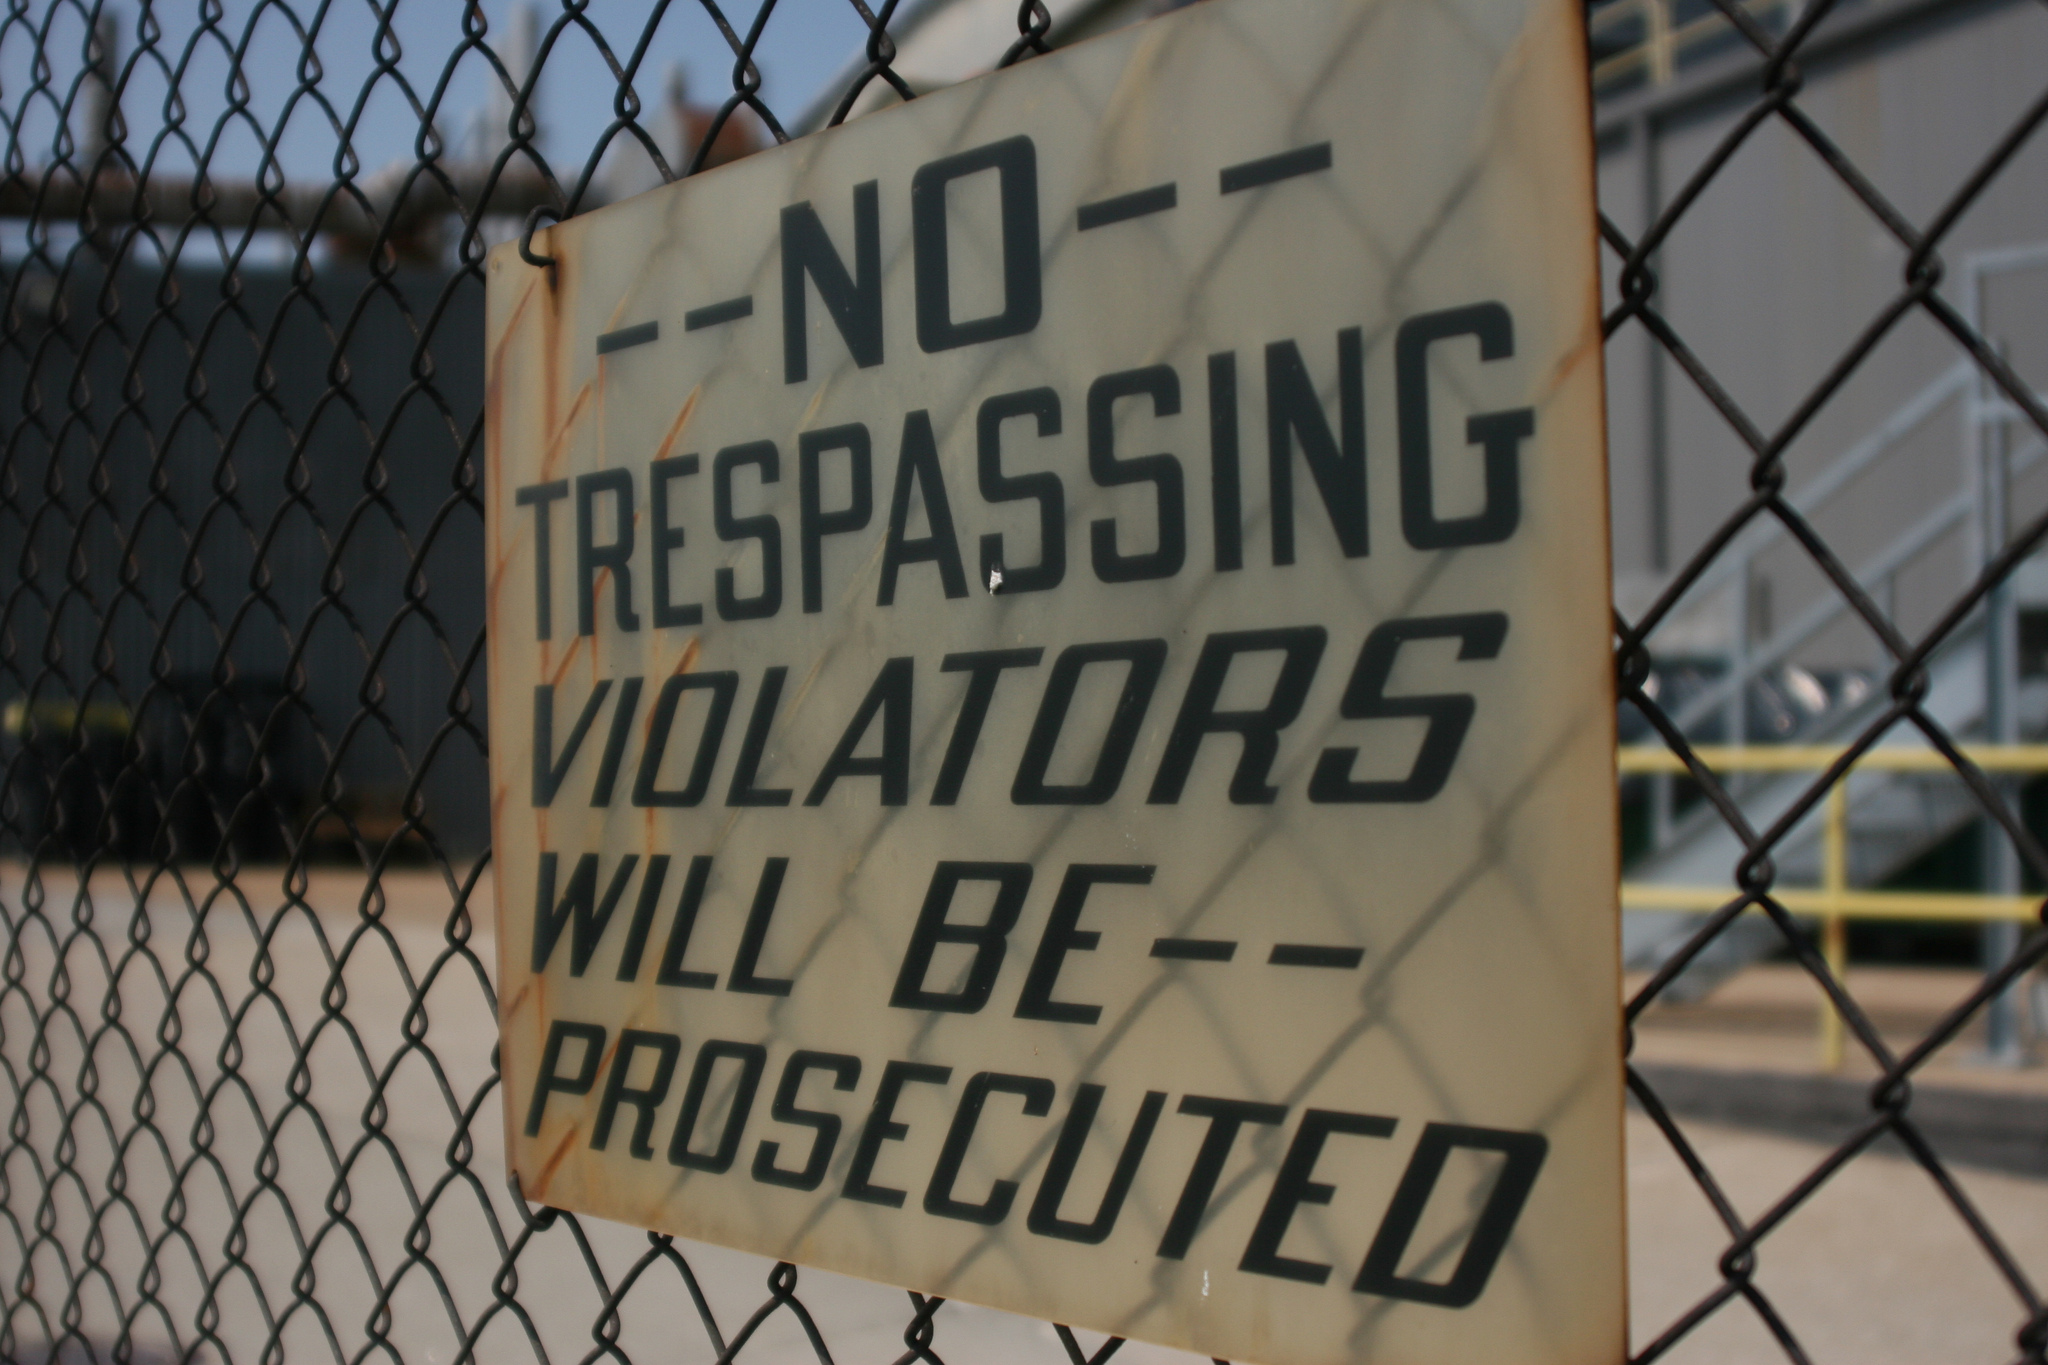 No trespassing Sign (NW)